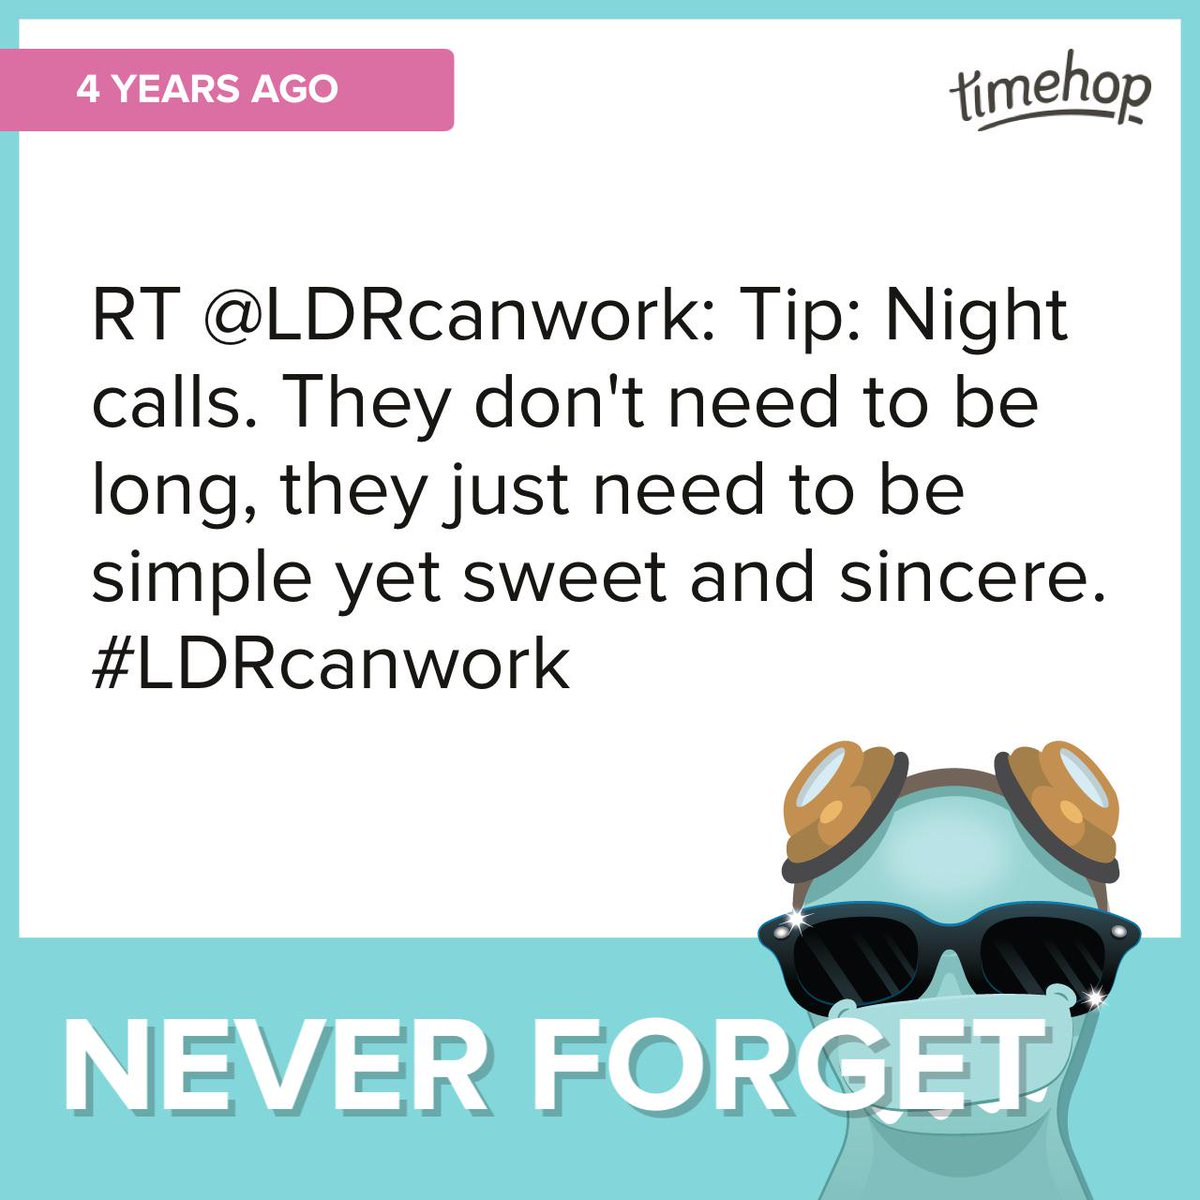 Never forget #timehop @LDRcanwork http://t.co/o30IuQgGXR http://t.co/44sP2k5DOc